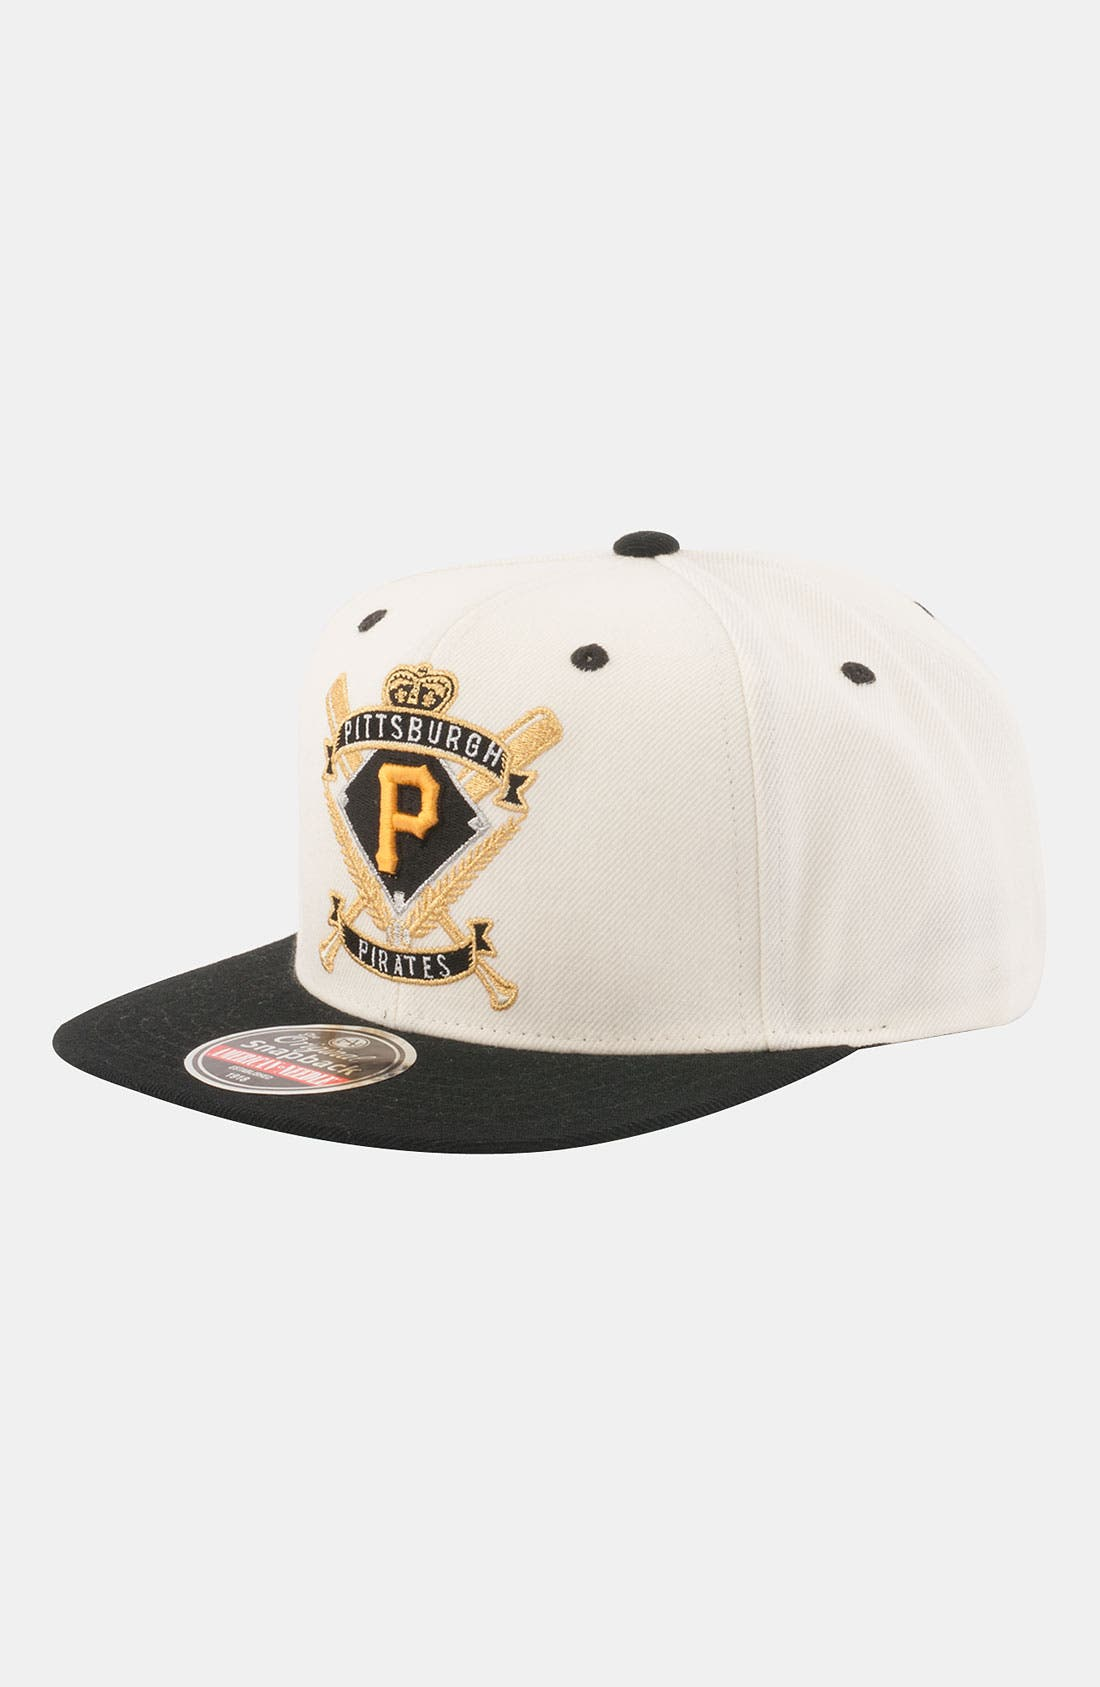 Alternate Image 1 Selected - American Needle 'Pittsburgh Pirates - Spirit Crest' Snapback Baseball Cap